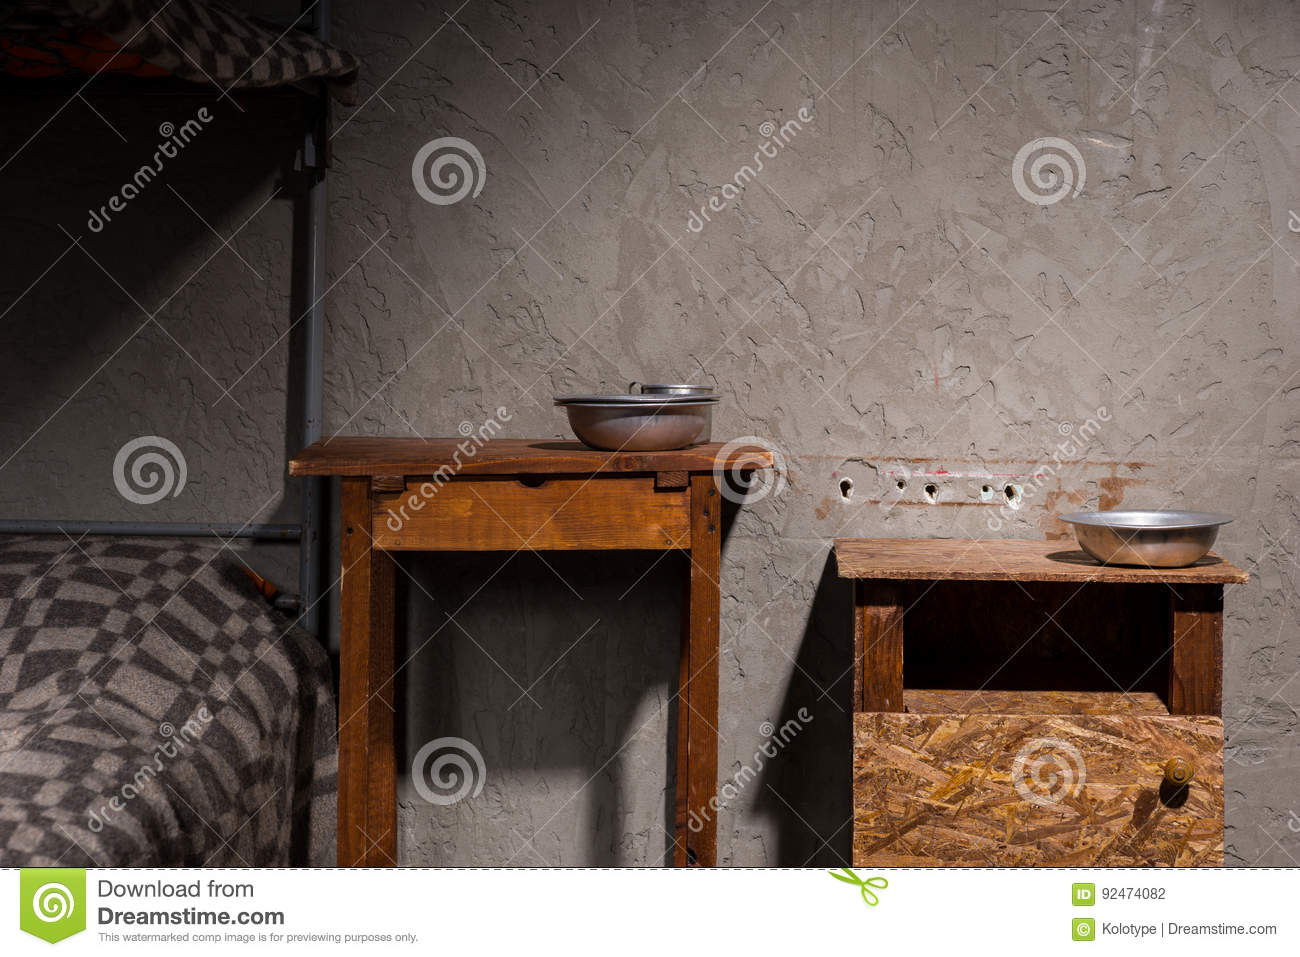 Wooden Bedside Tables With Aluminum Dishes Near Iron Bunk Bed In